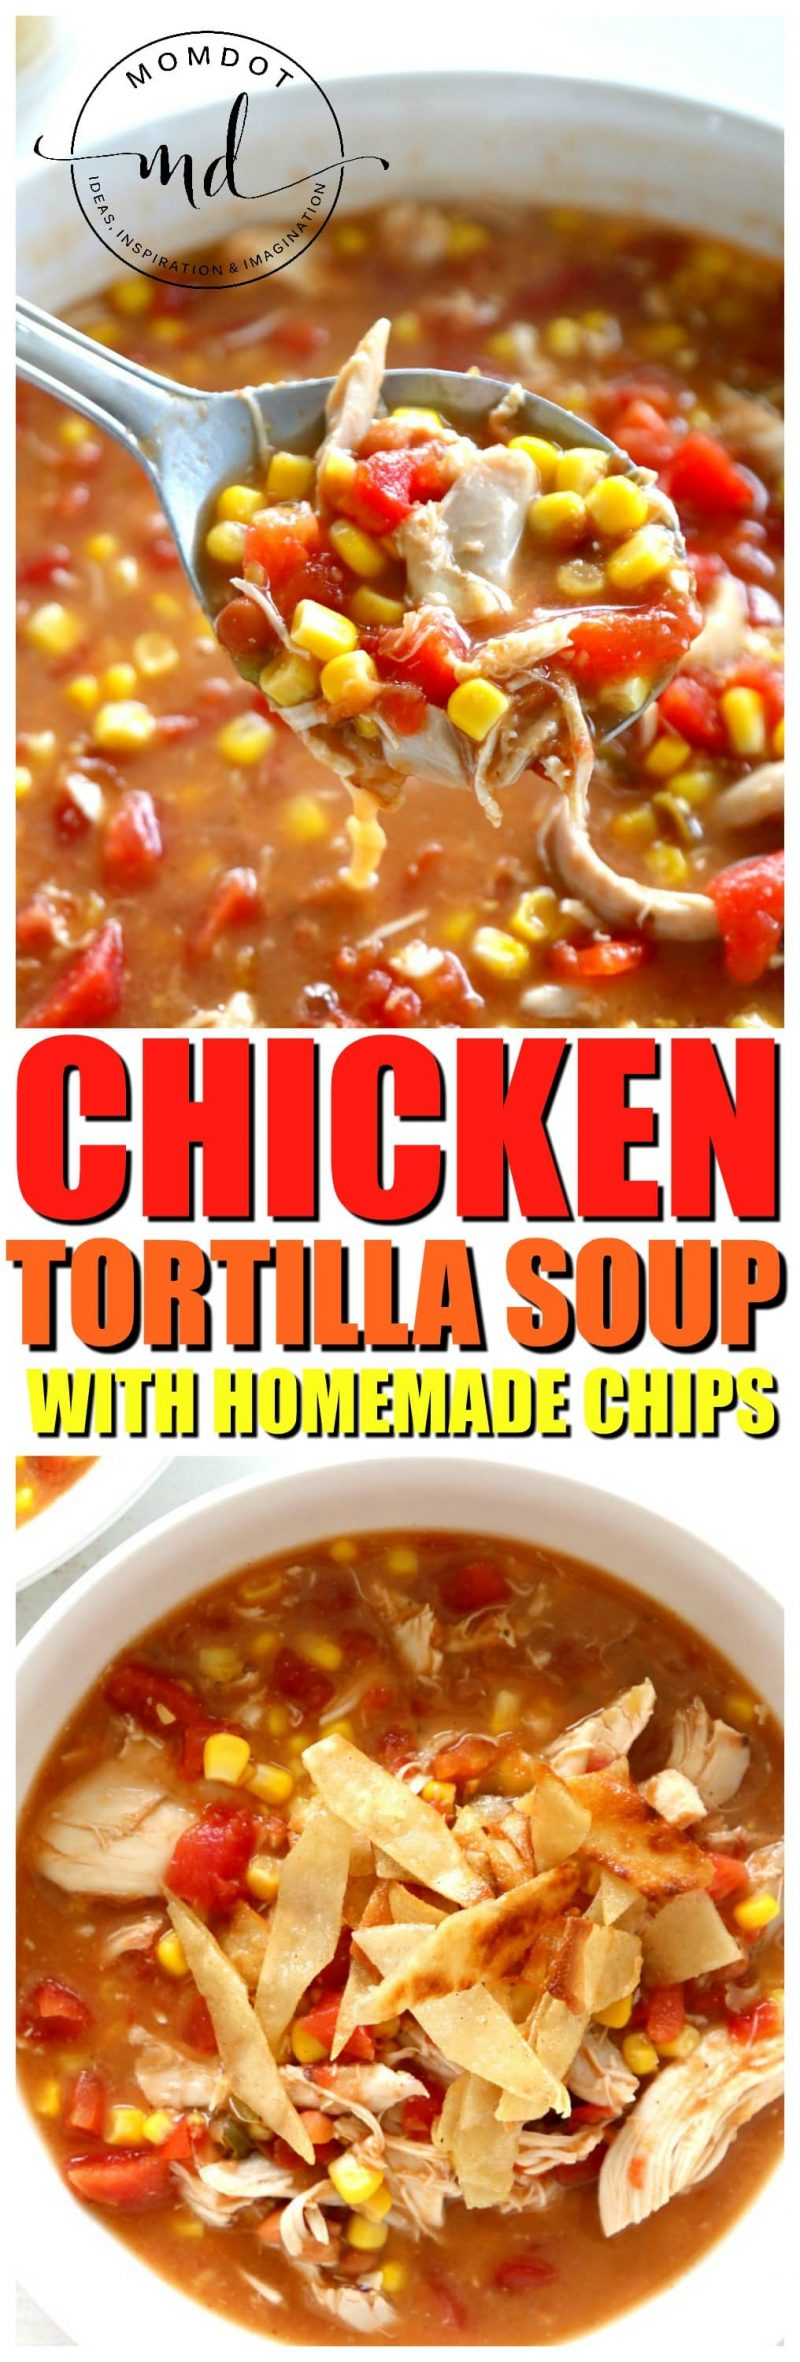 Chicken Tortilla Soup Recipe - An easy creamy recipe with 5 minute homemade chips to top it! Perfect homemade dinner recipe #food #recipe #chicken